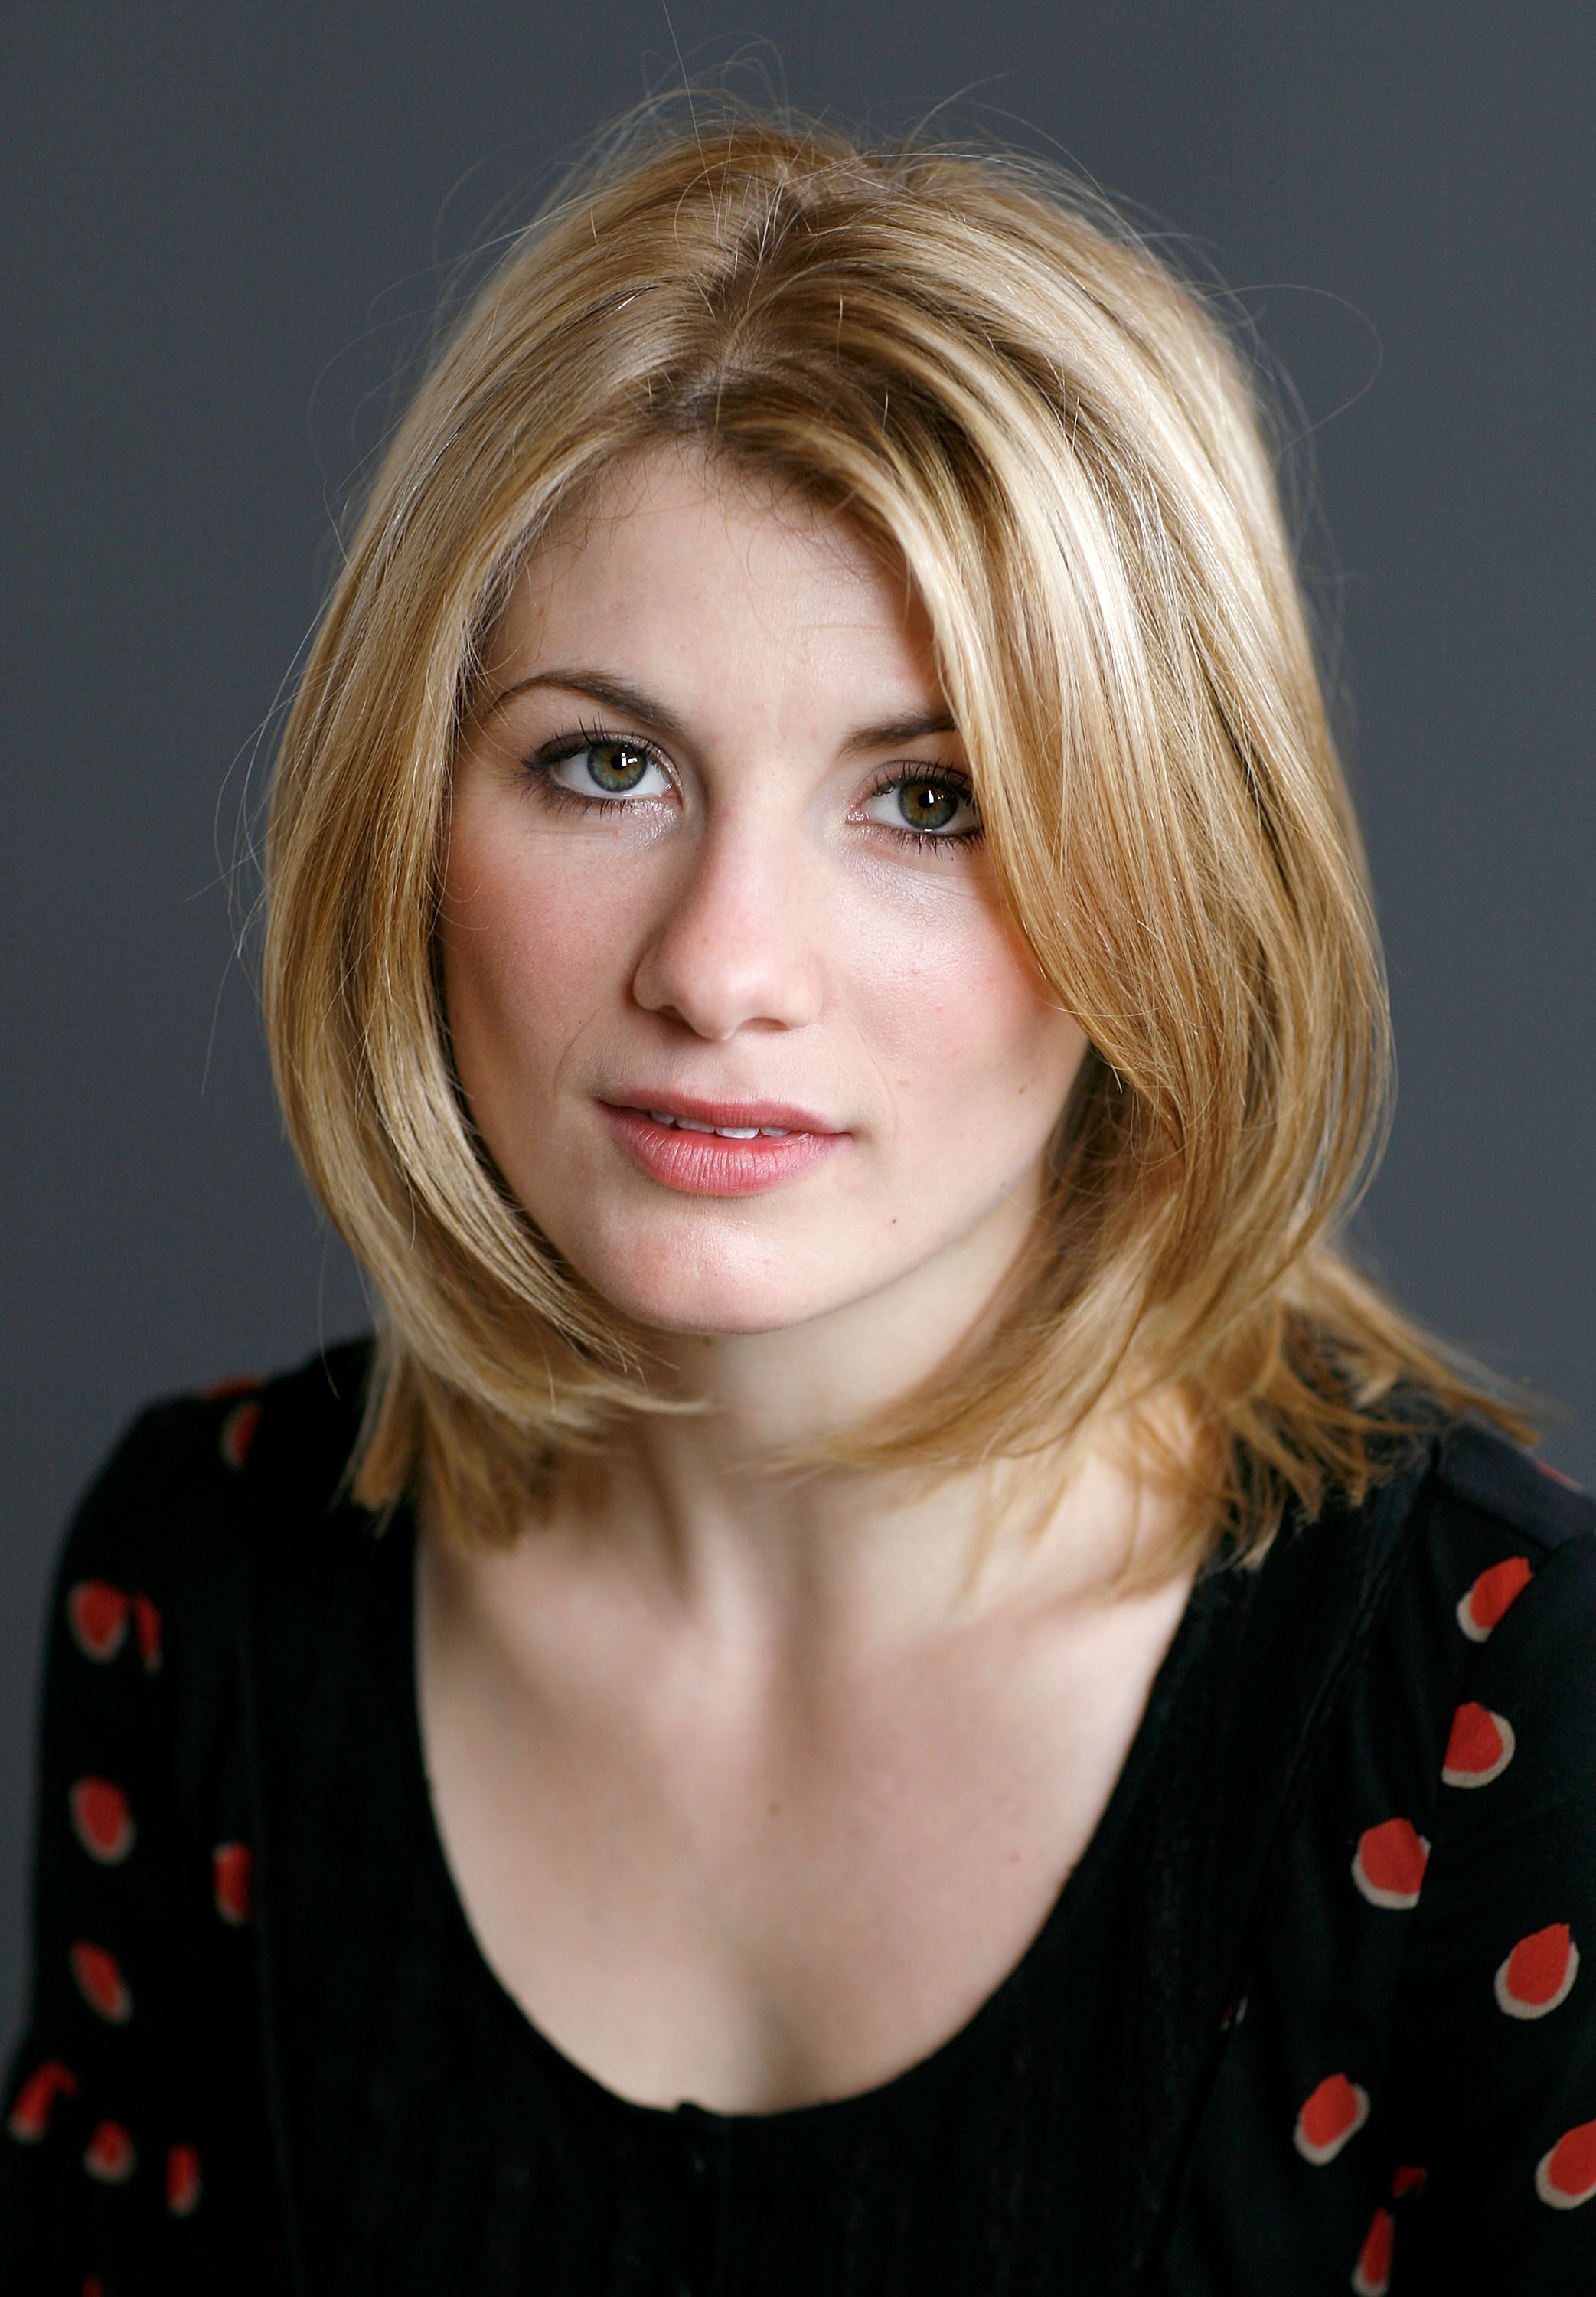 Jodie-Whittaker-Lips